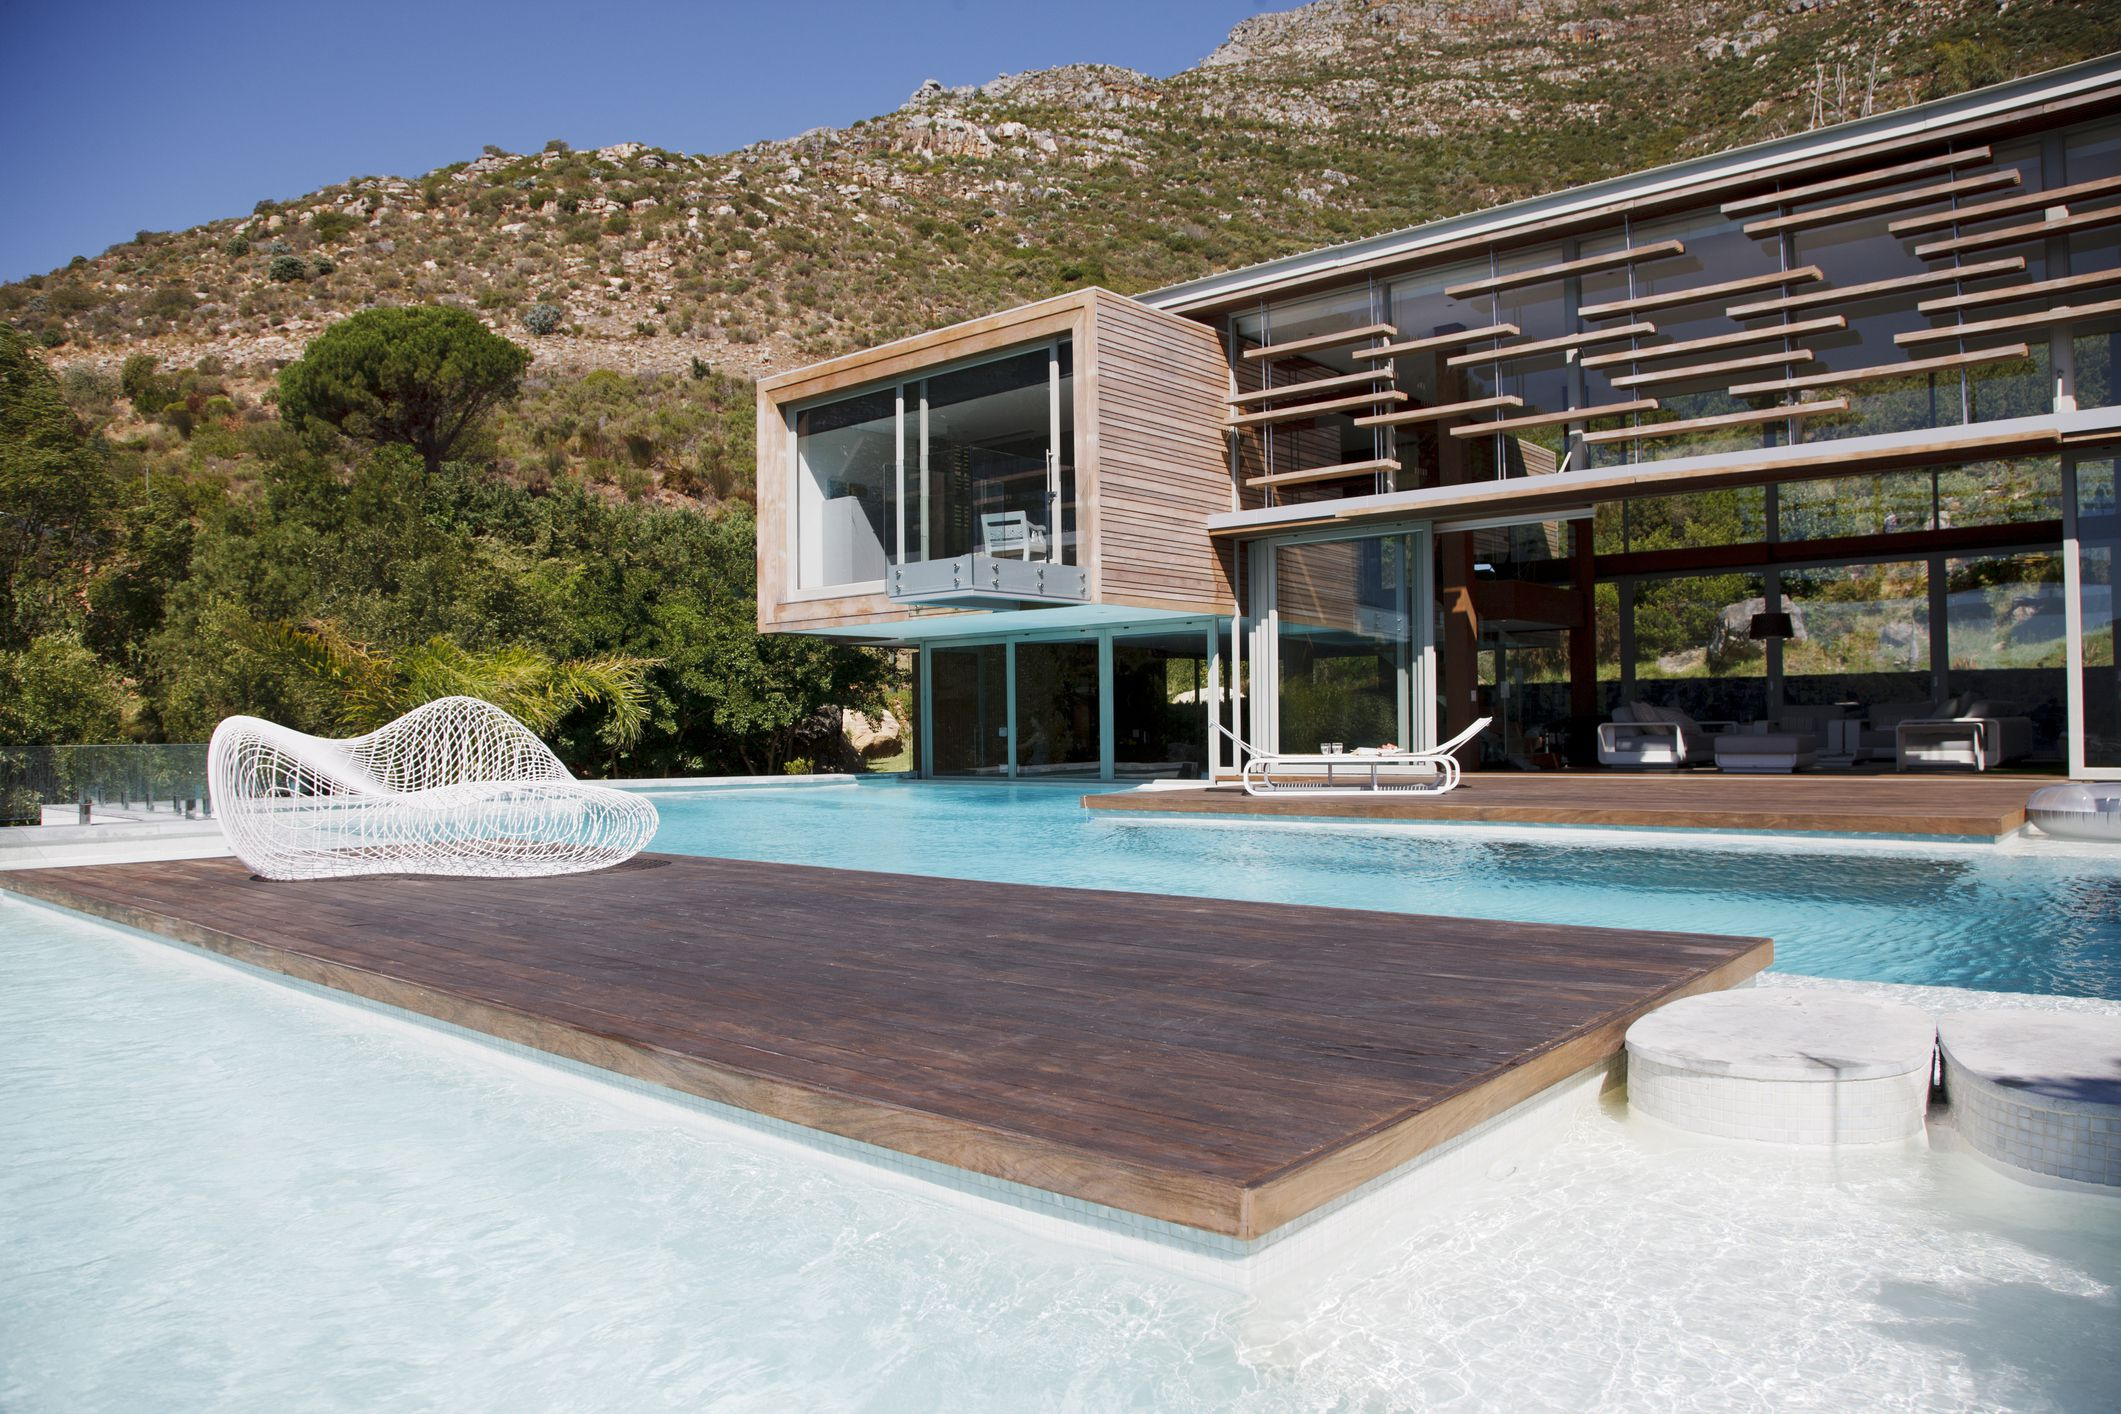 A Guide to Swimming Pool Types, Designs, and Styles